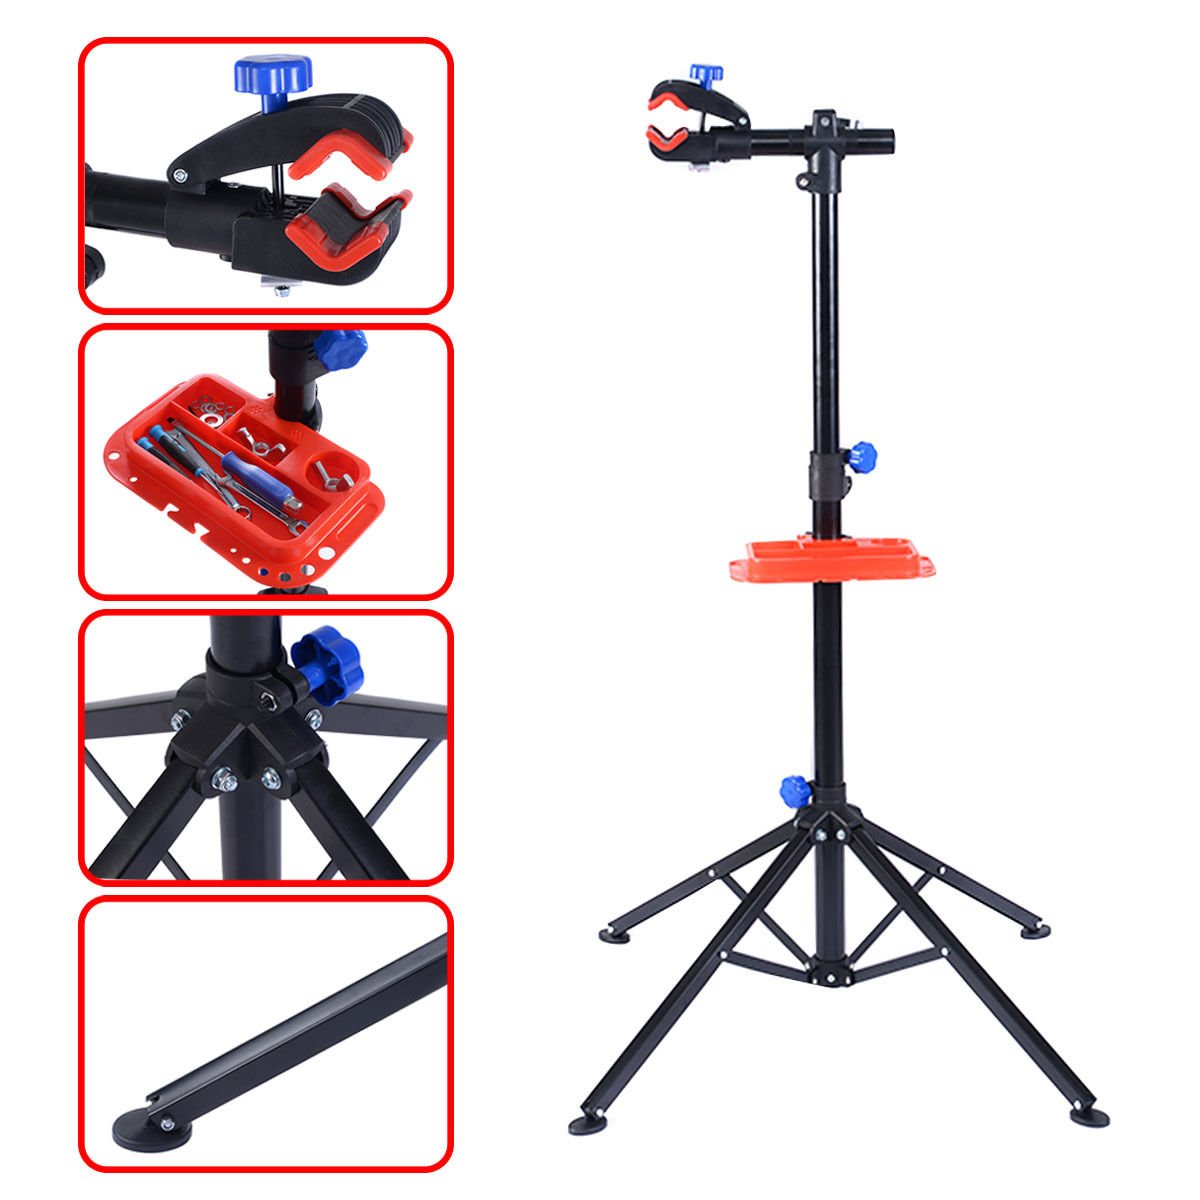 S AFSTAR Pro Mechanic Bike Repair Stand Adjustable 41'' to 75'' Cycle Rack Bicycle Workstand Tool Tray by S AFSTAR